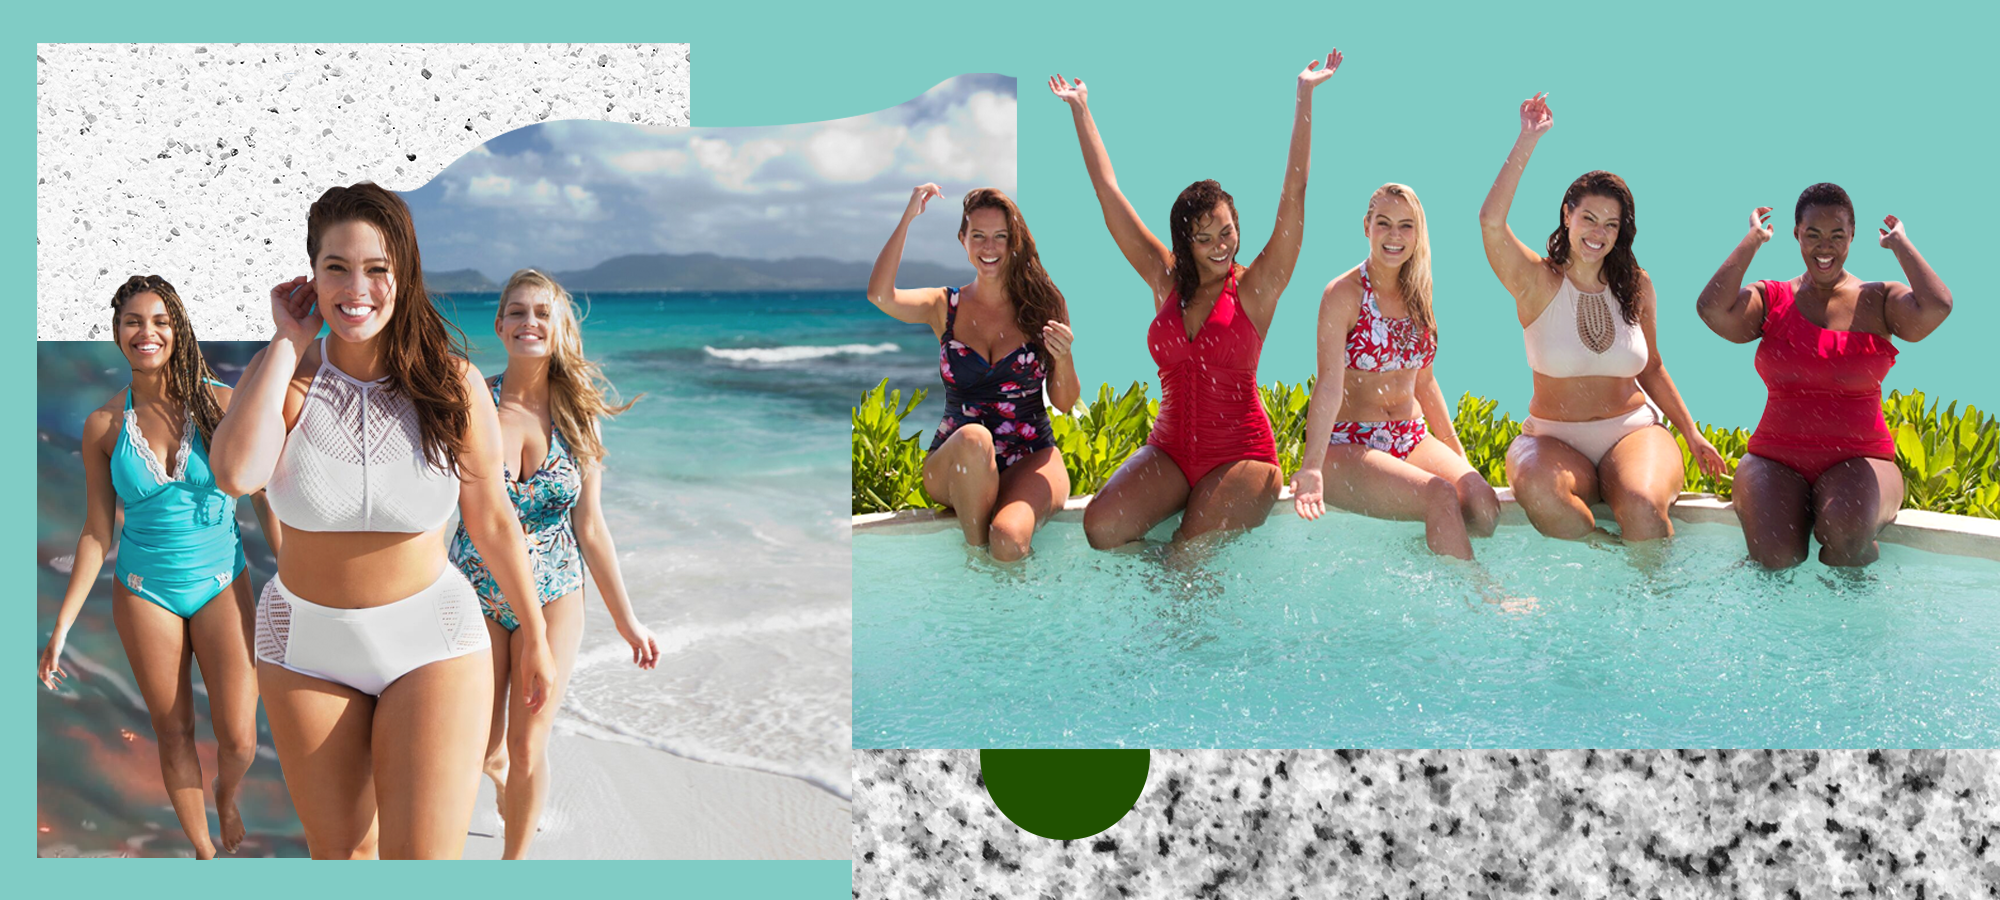 plus size swimsuits, swimsuits for all, size inclusive swimsuits